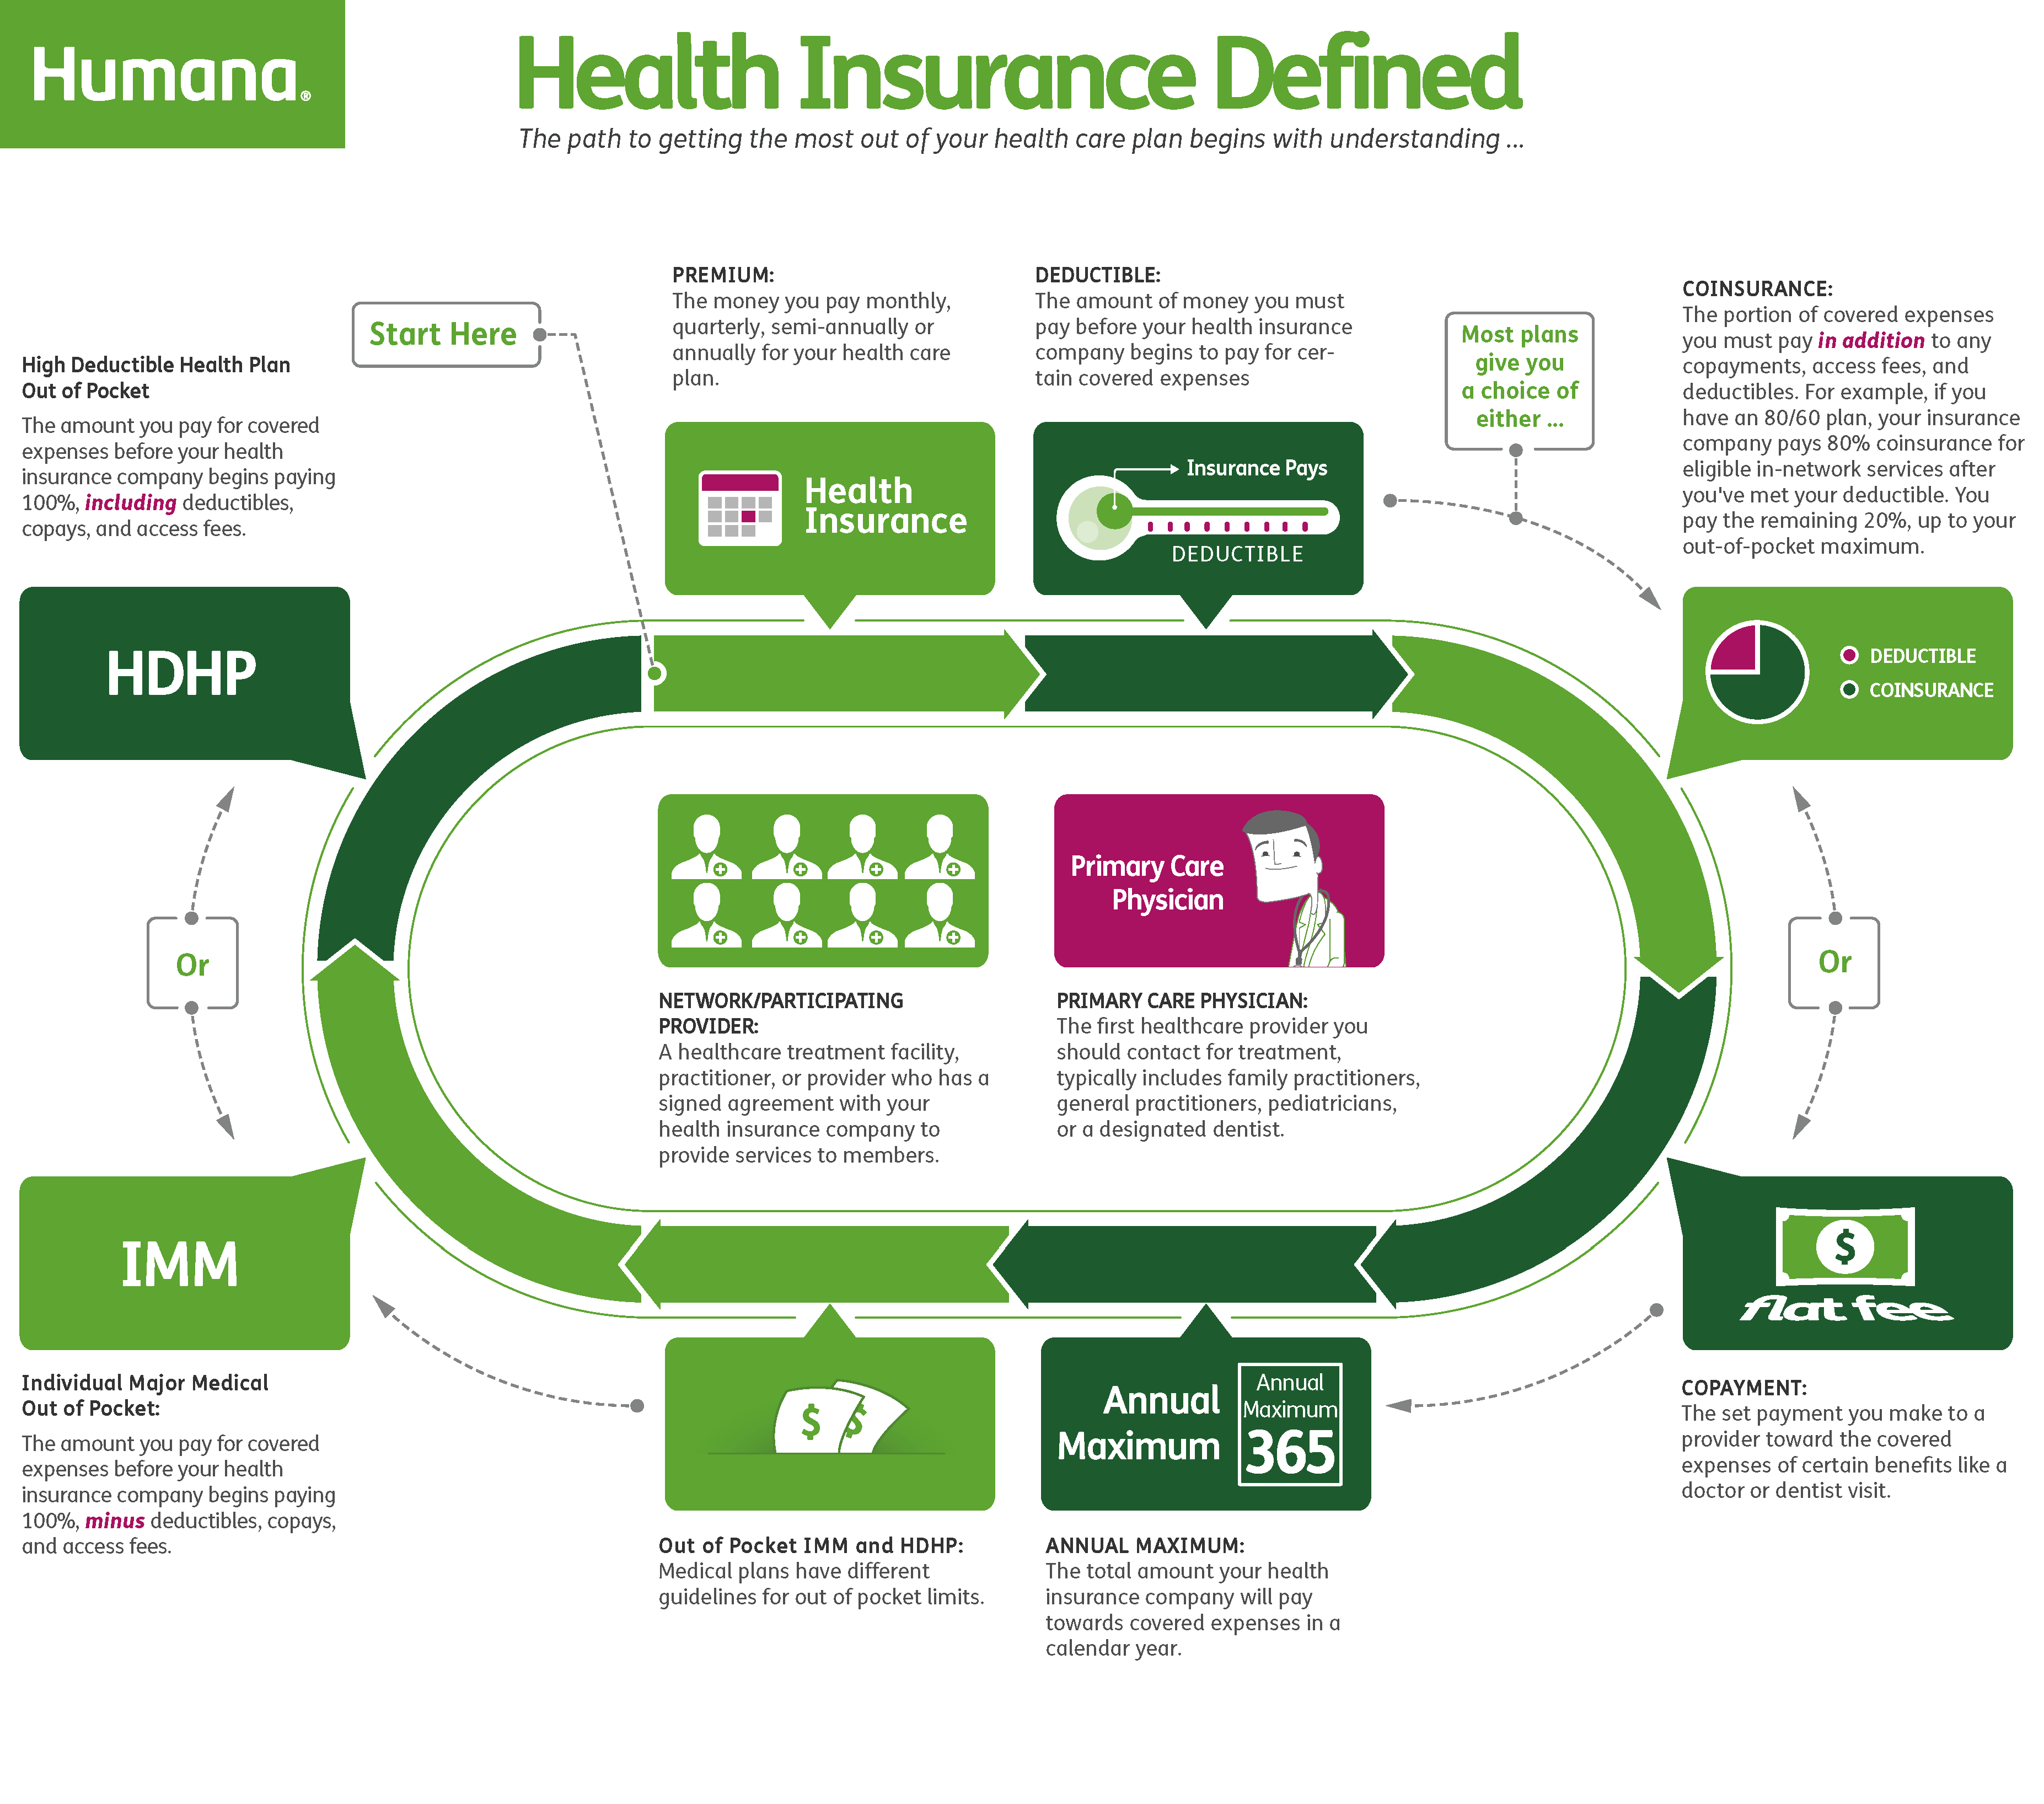 Health Insurance can be confusing! Check out this